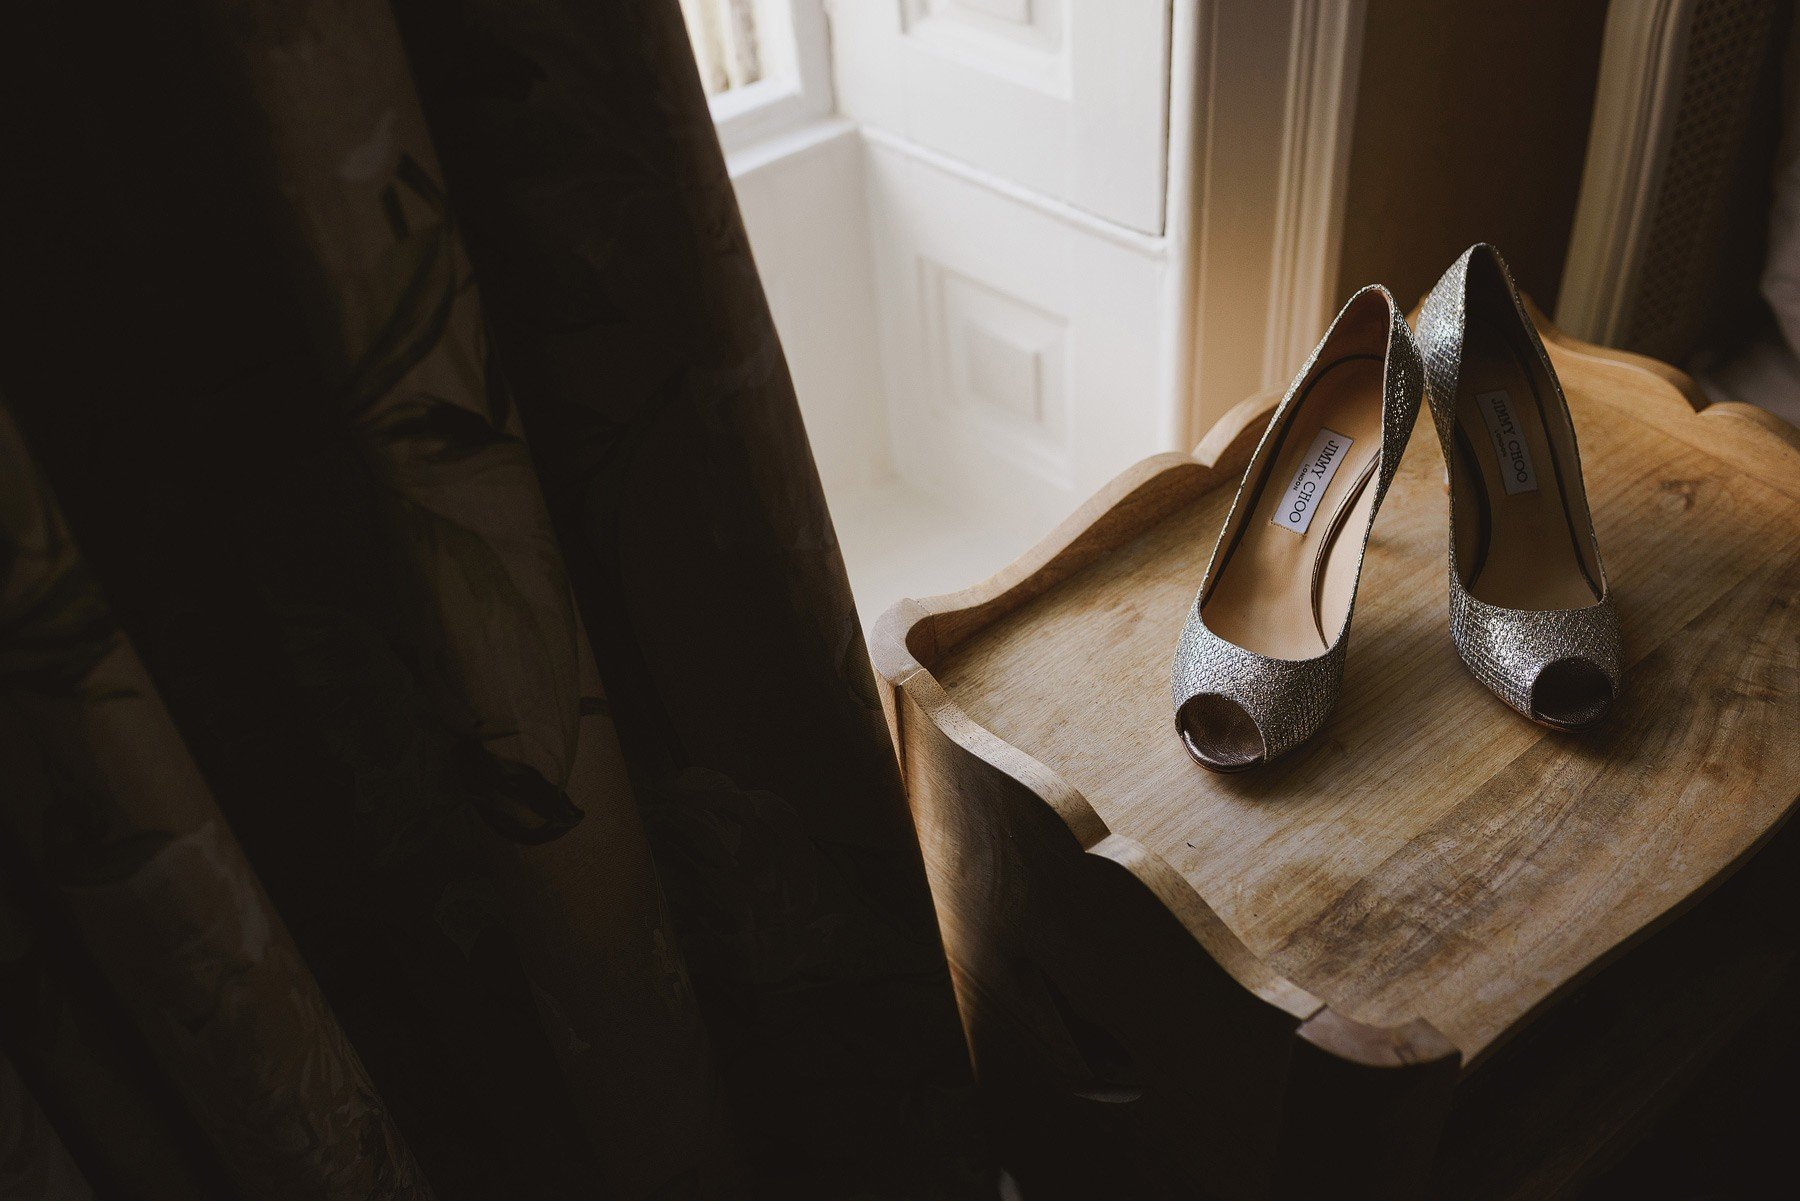 jimmy choos at the rectory in crudwell